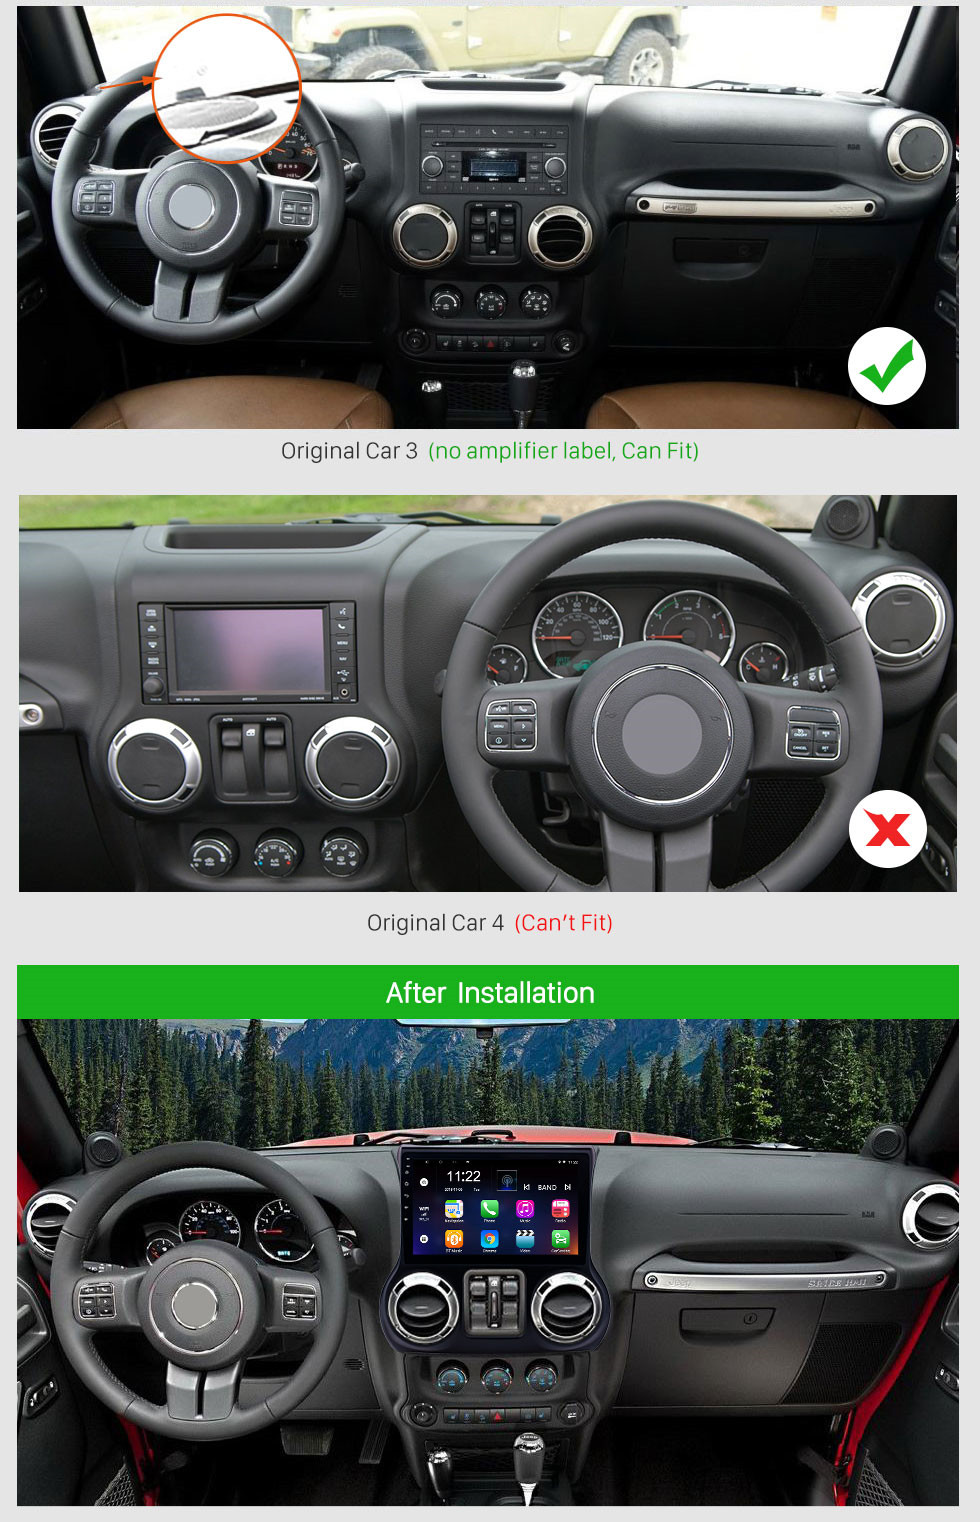 Seicane Android 10.0 10.1 Inch 1024*600 Touchscreen Radio For 2011 2012 2013 2014 2015 2016 2017 JEEP Wrangler Bluetooth Music GPS Navigation Head Unit Support Mirror Link DAB+ OBDII USB TPMS 3G WiFi Steering Wheel Control